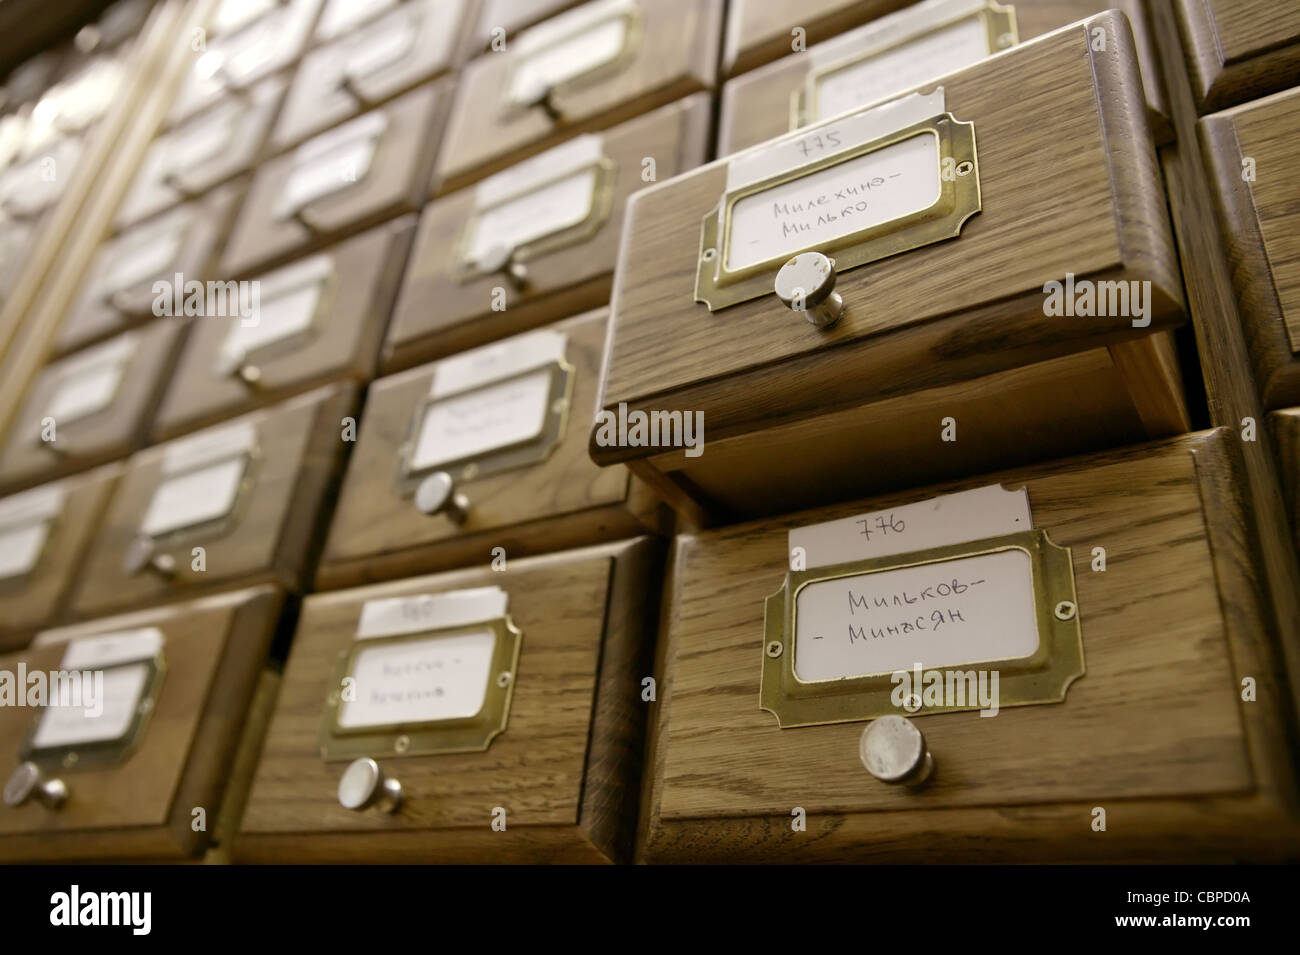 Library catalog, archive, a box file, a card search - Stock Image